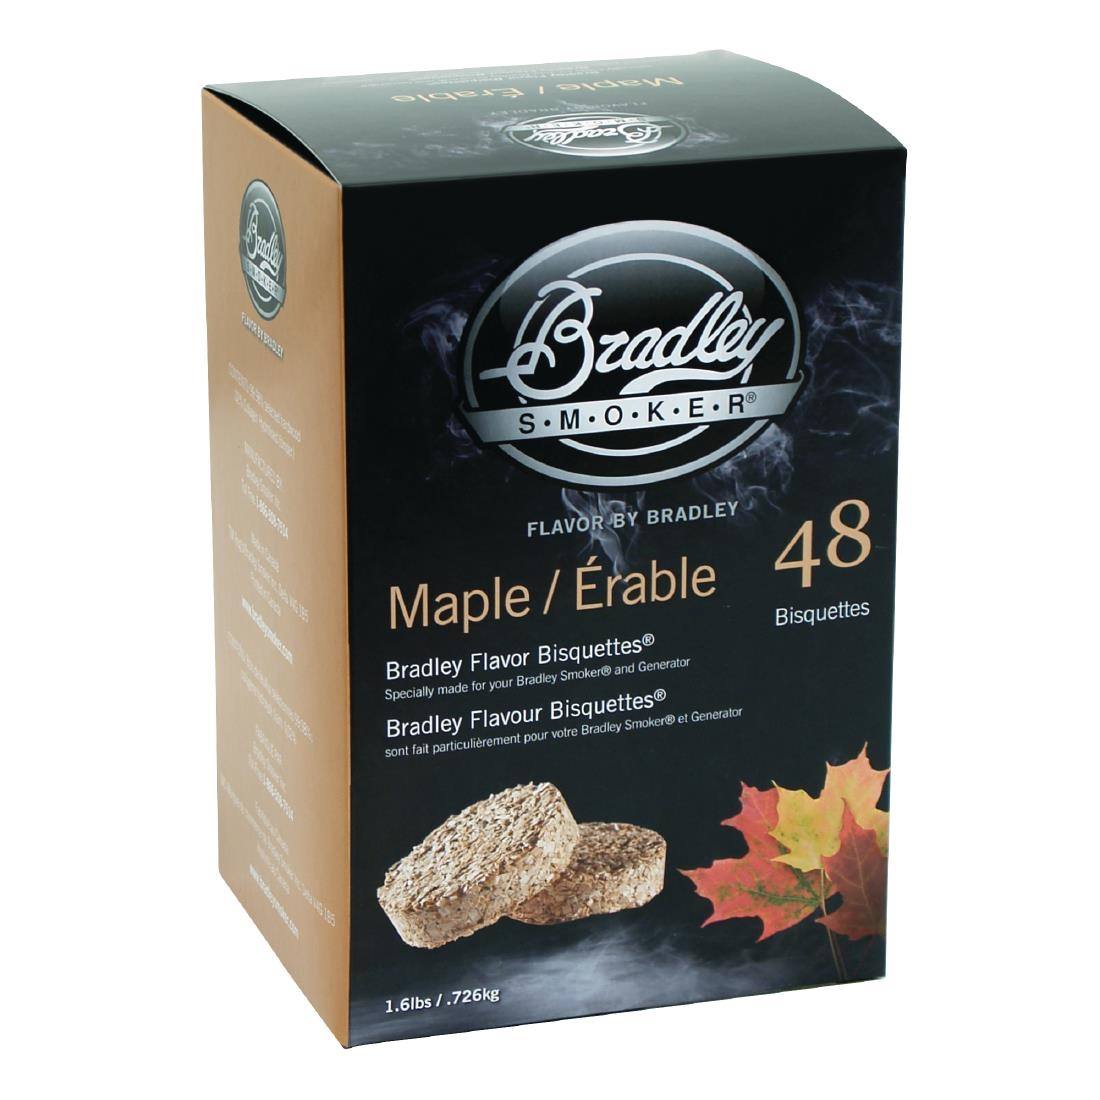 Image of Bradley Food Smoker Bisquettes BTMP48 (Pack of 48) Pack of 48